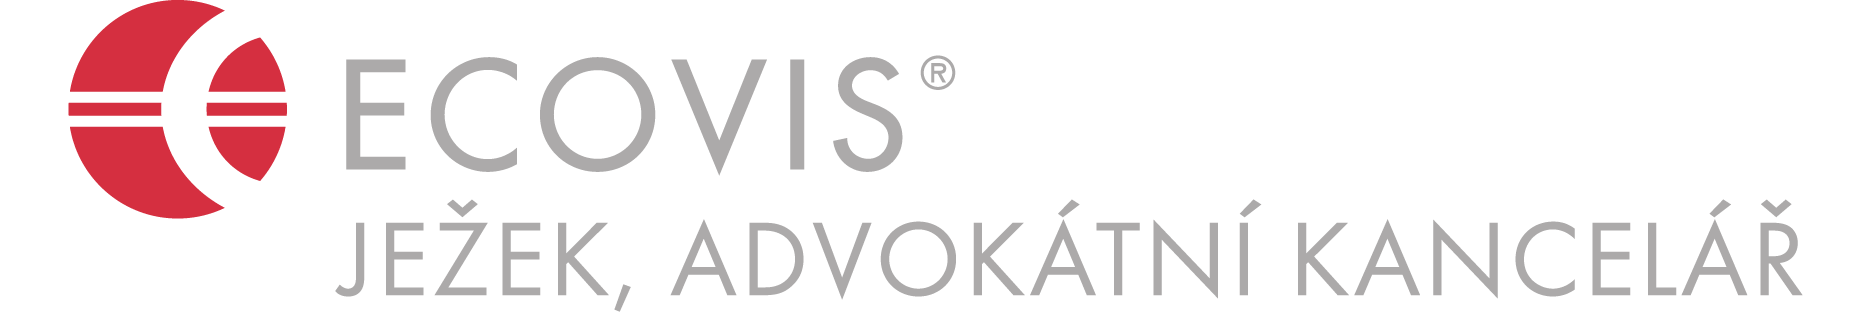 Czech law firm, Czech lawyers, Czech legal services